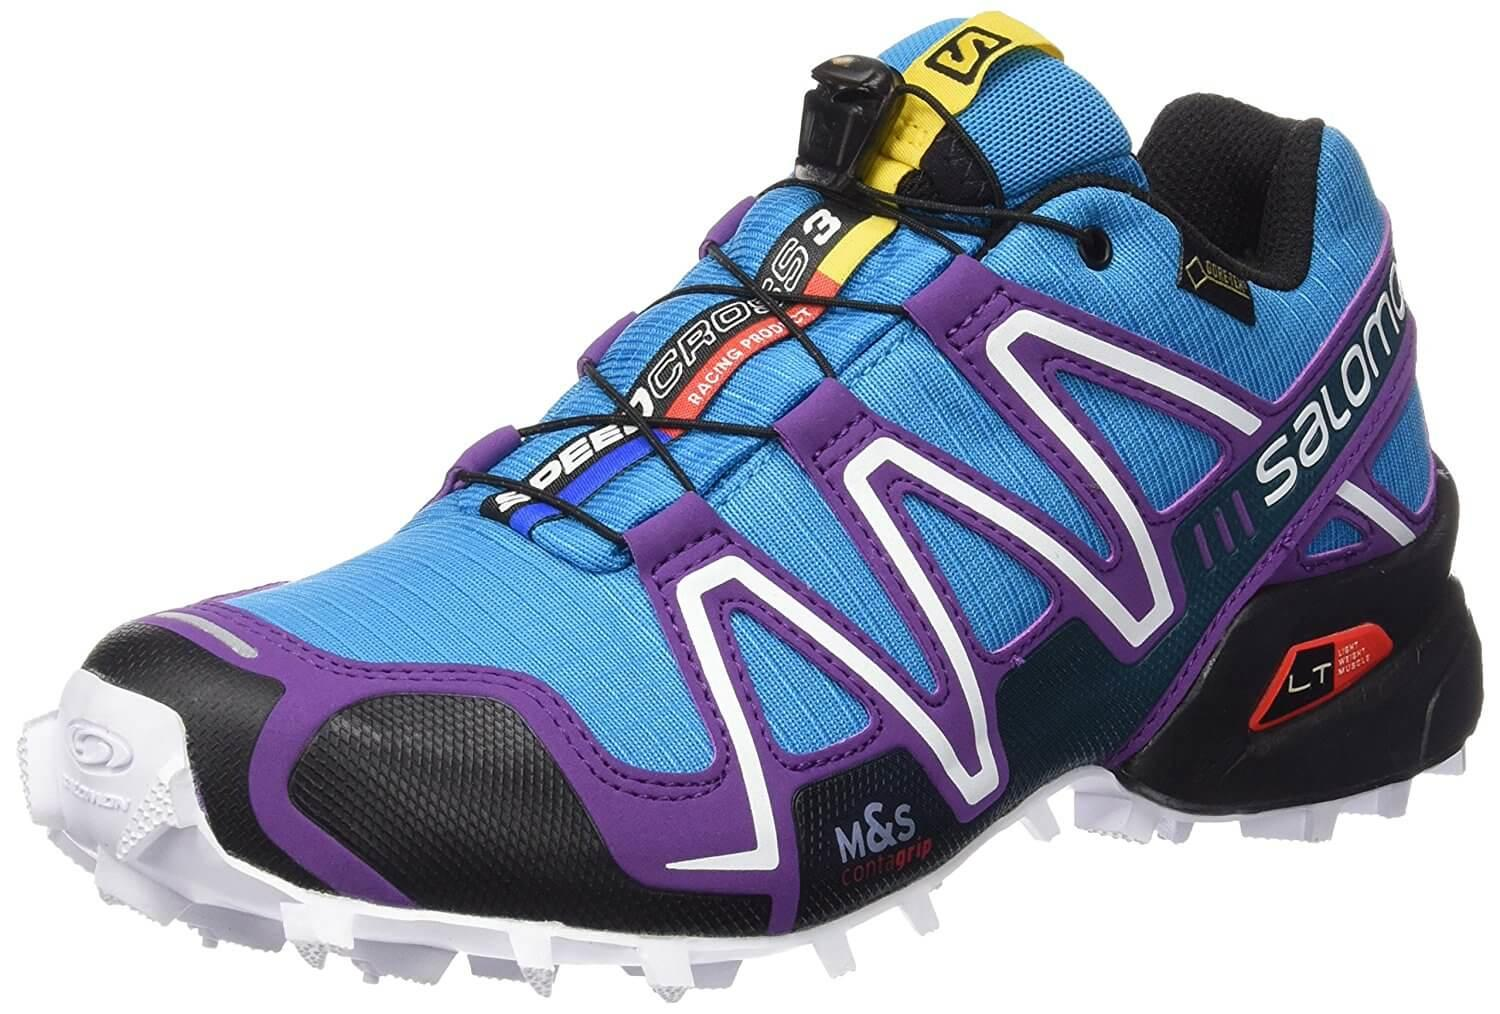 6ffc895f6 Salomon Speedcross 3 GTX - To Buy or Not in July 2019?